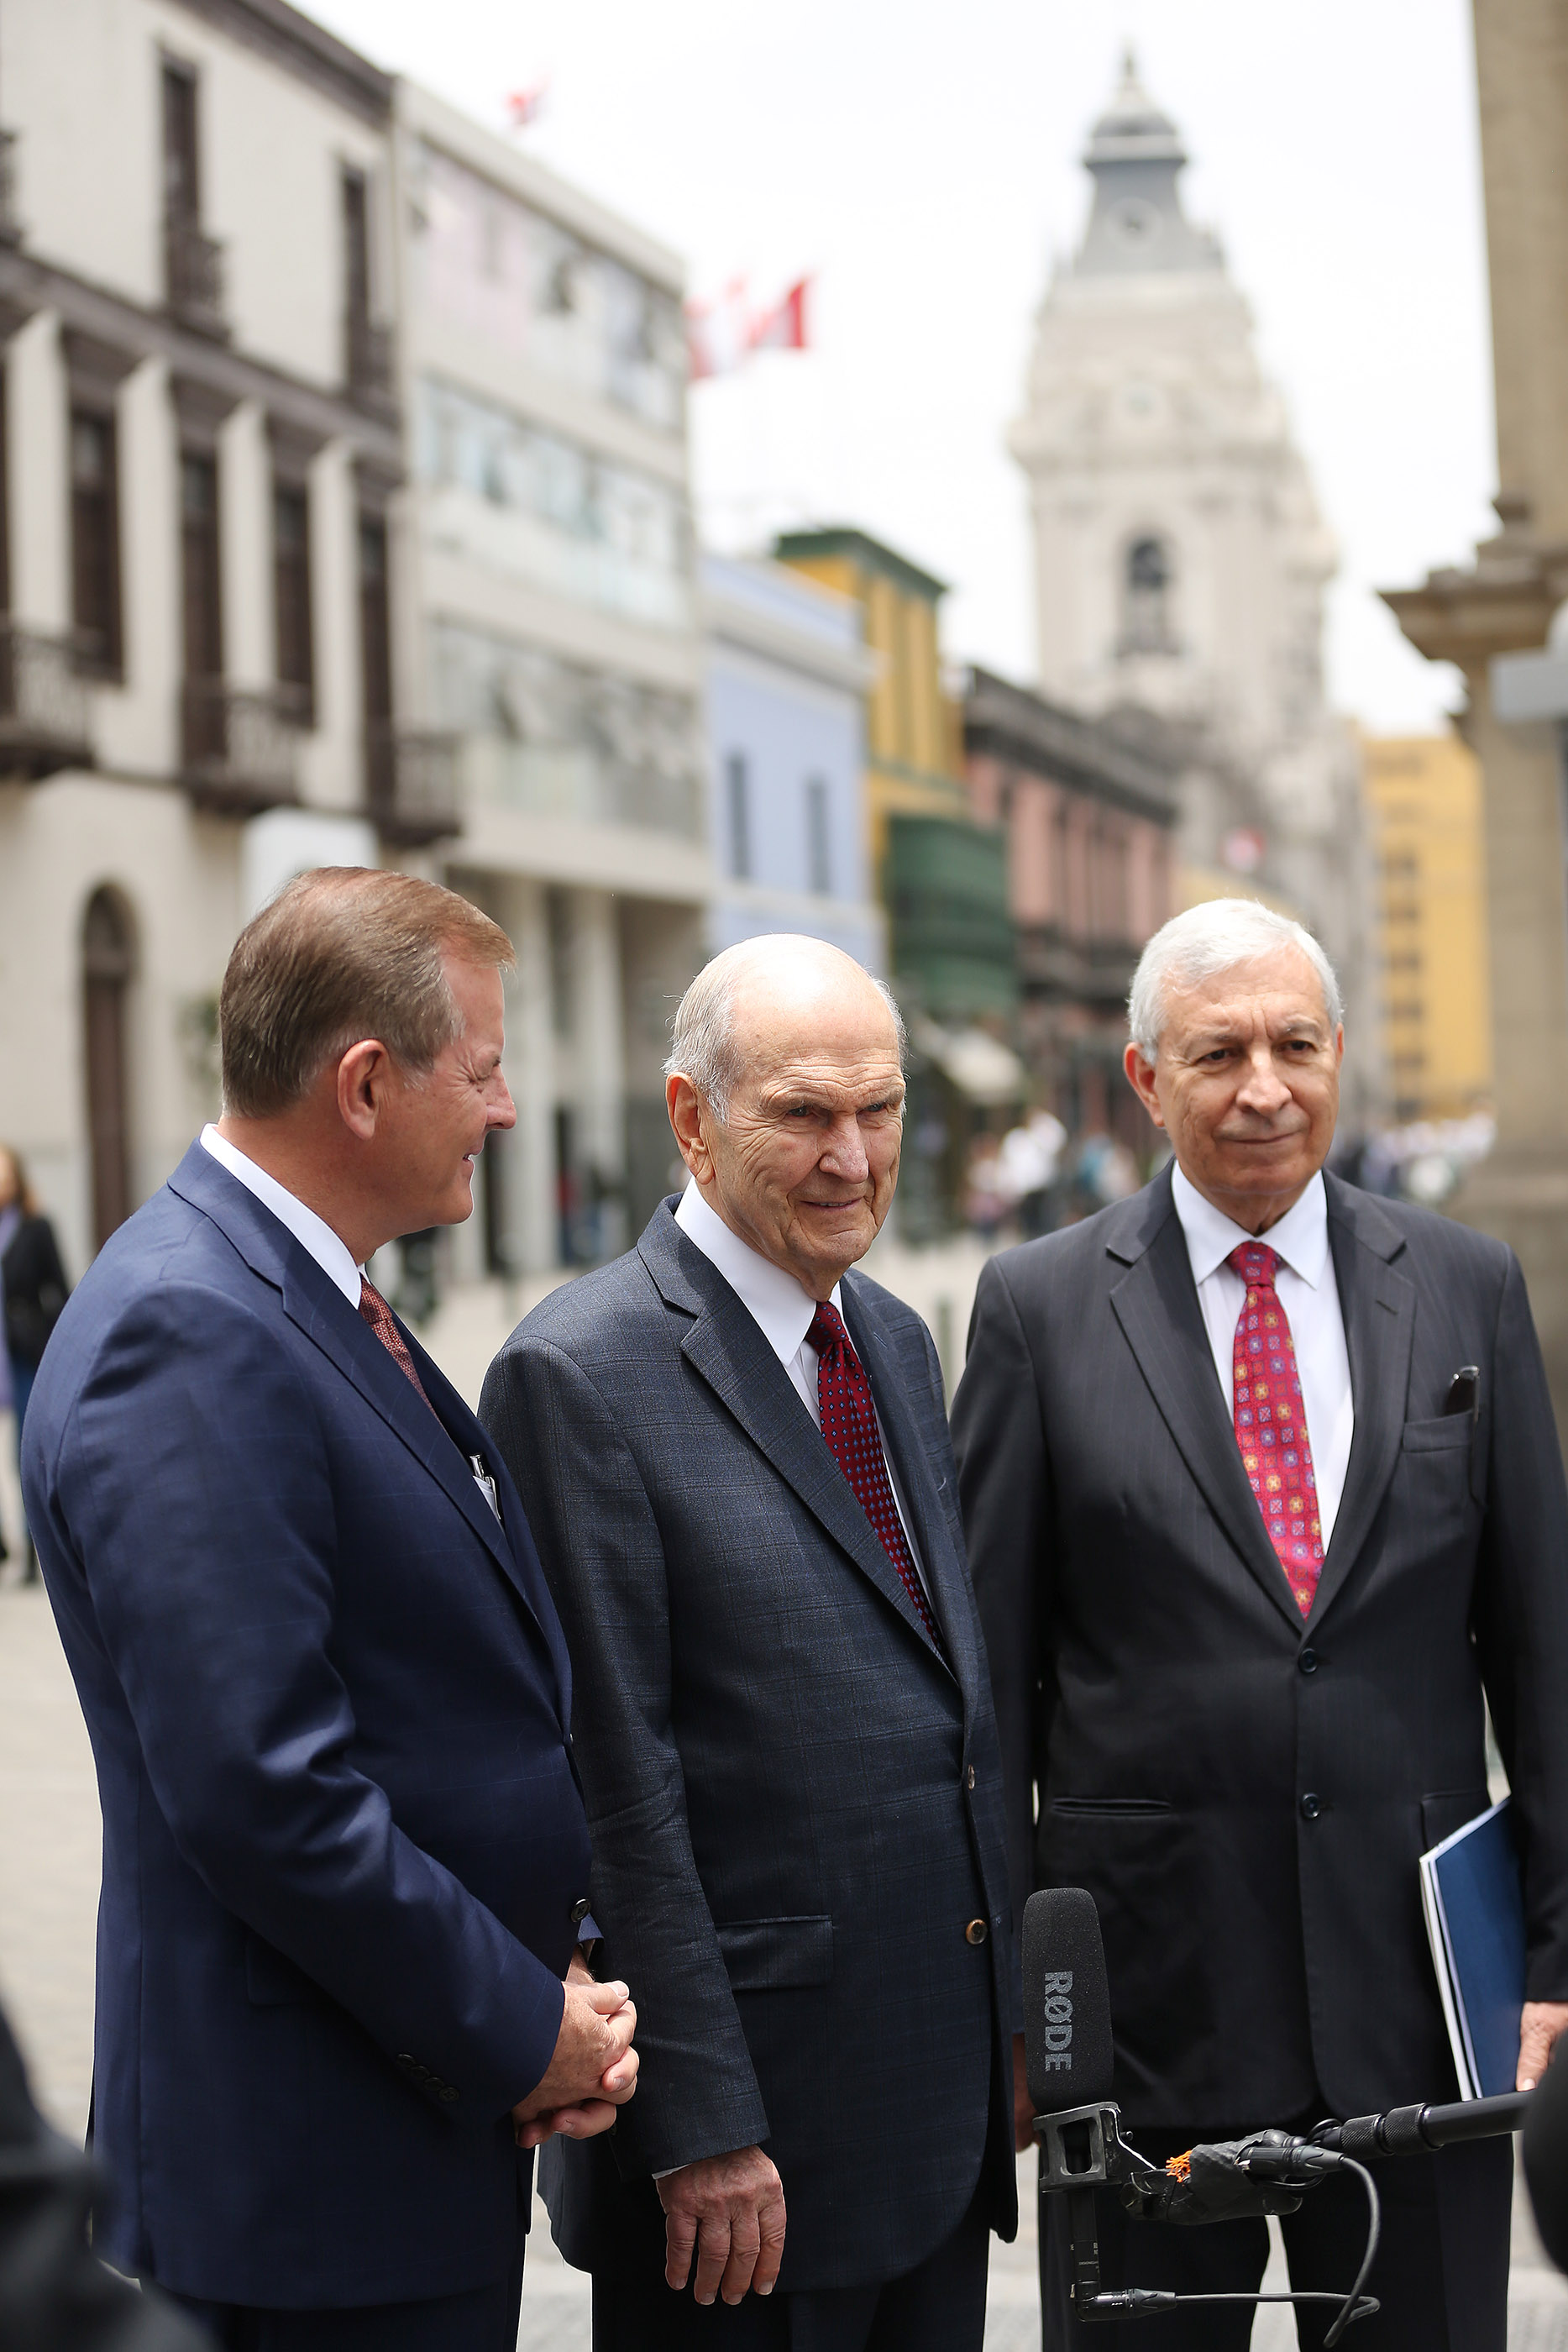 President Russell M. Nelson of The Church of Jesus Christ of Latter-day Saints, center, Elder Gary E. Stevenson, of the Quorum of the Twelve Apostles, and Elder Enrique Falabella, General Authority Seventy speak with media after leaving the Government Palace after speaking with the president of Peru in Lima, Peru on Oct. 20, 2018.